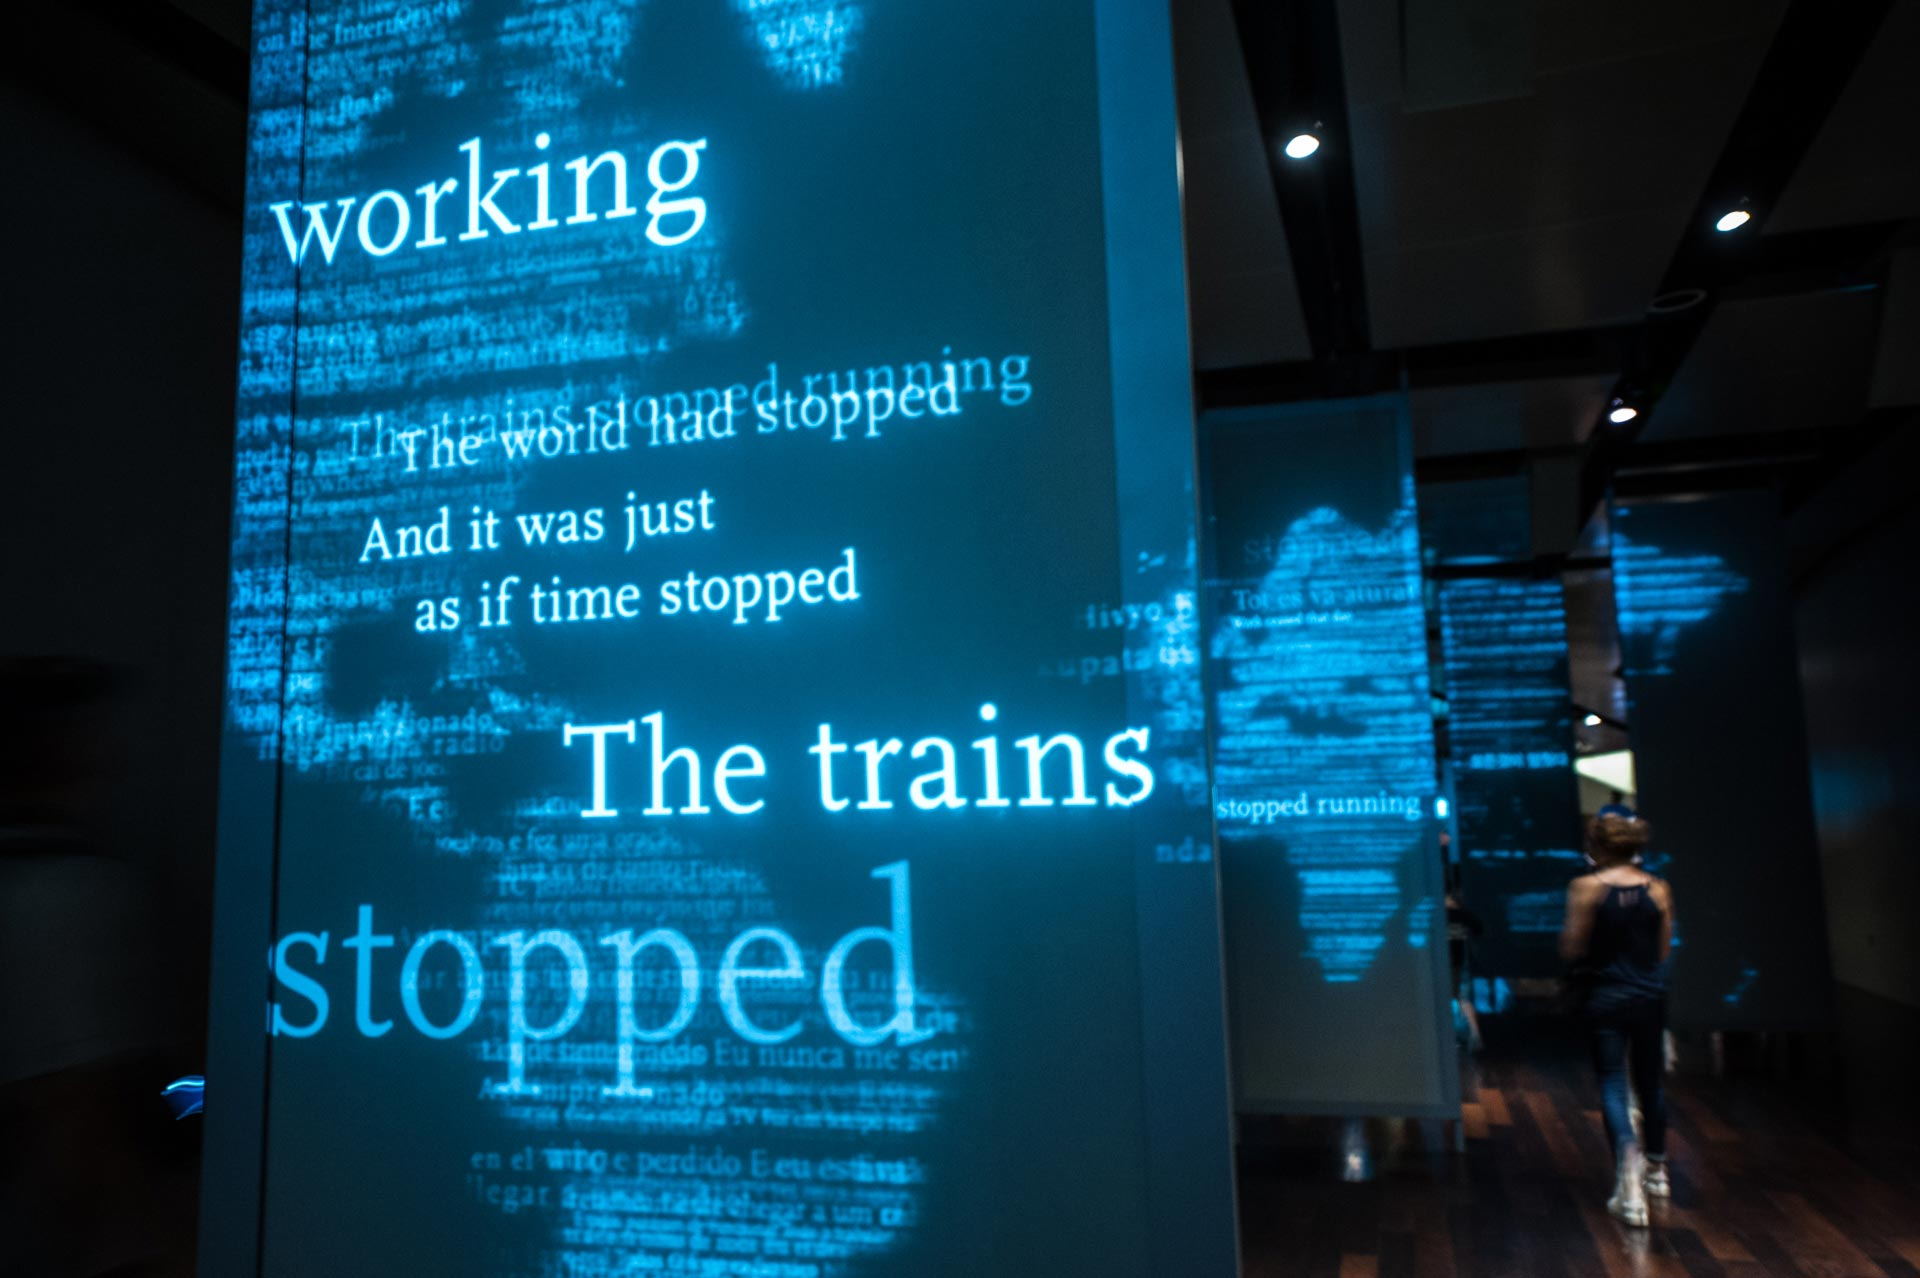 Quotes from 9/11 projected on panels at the National September 11 Memorial & Museum in New York, NY, USA